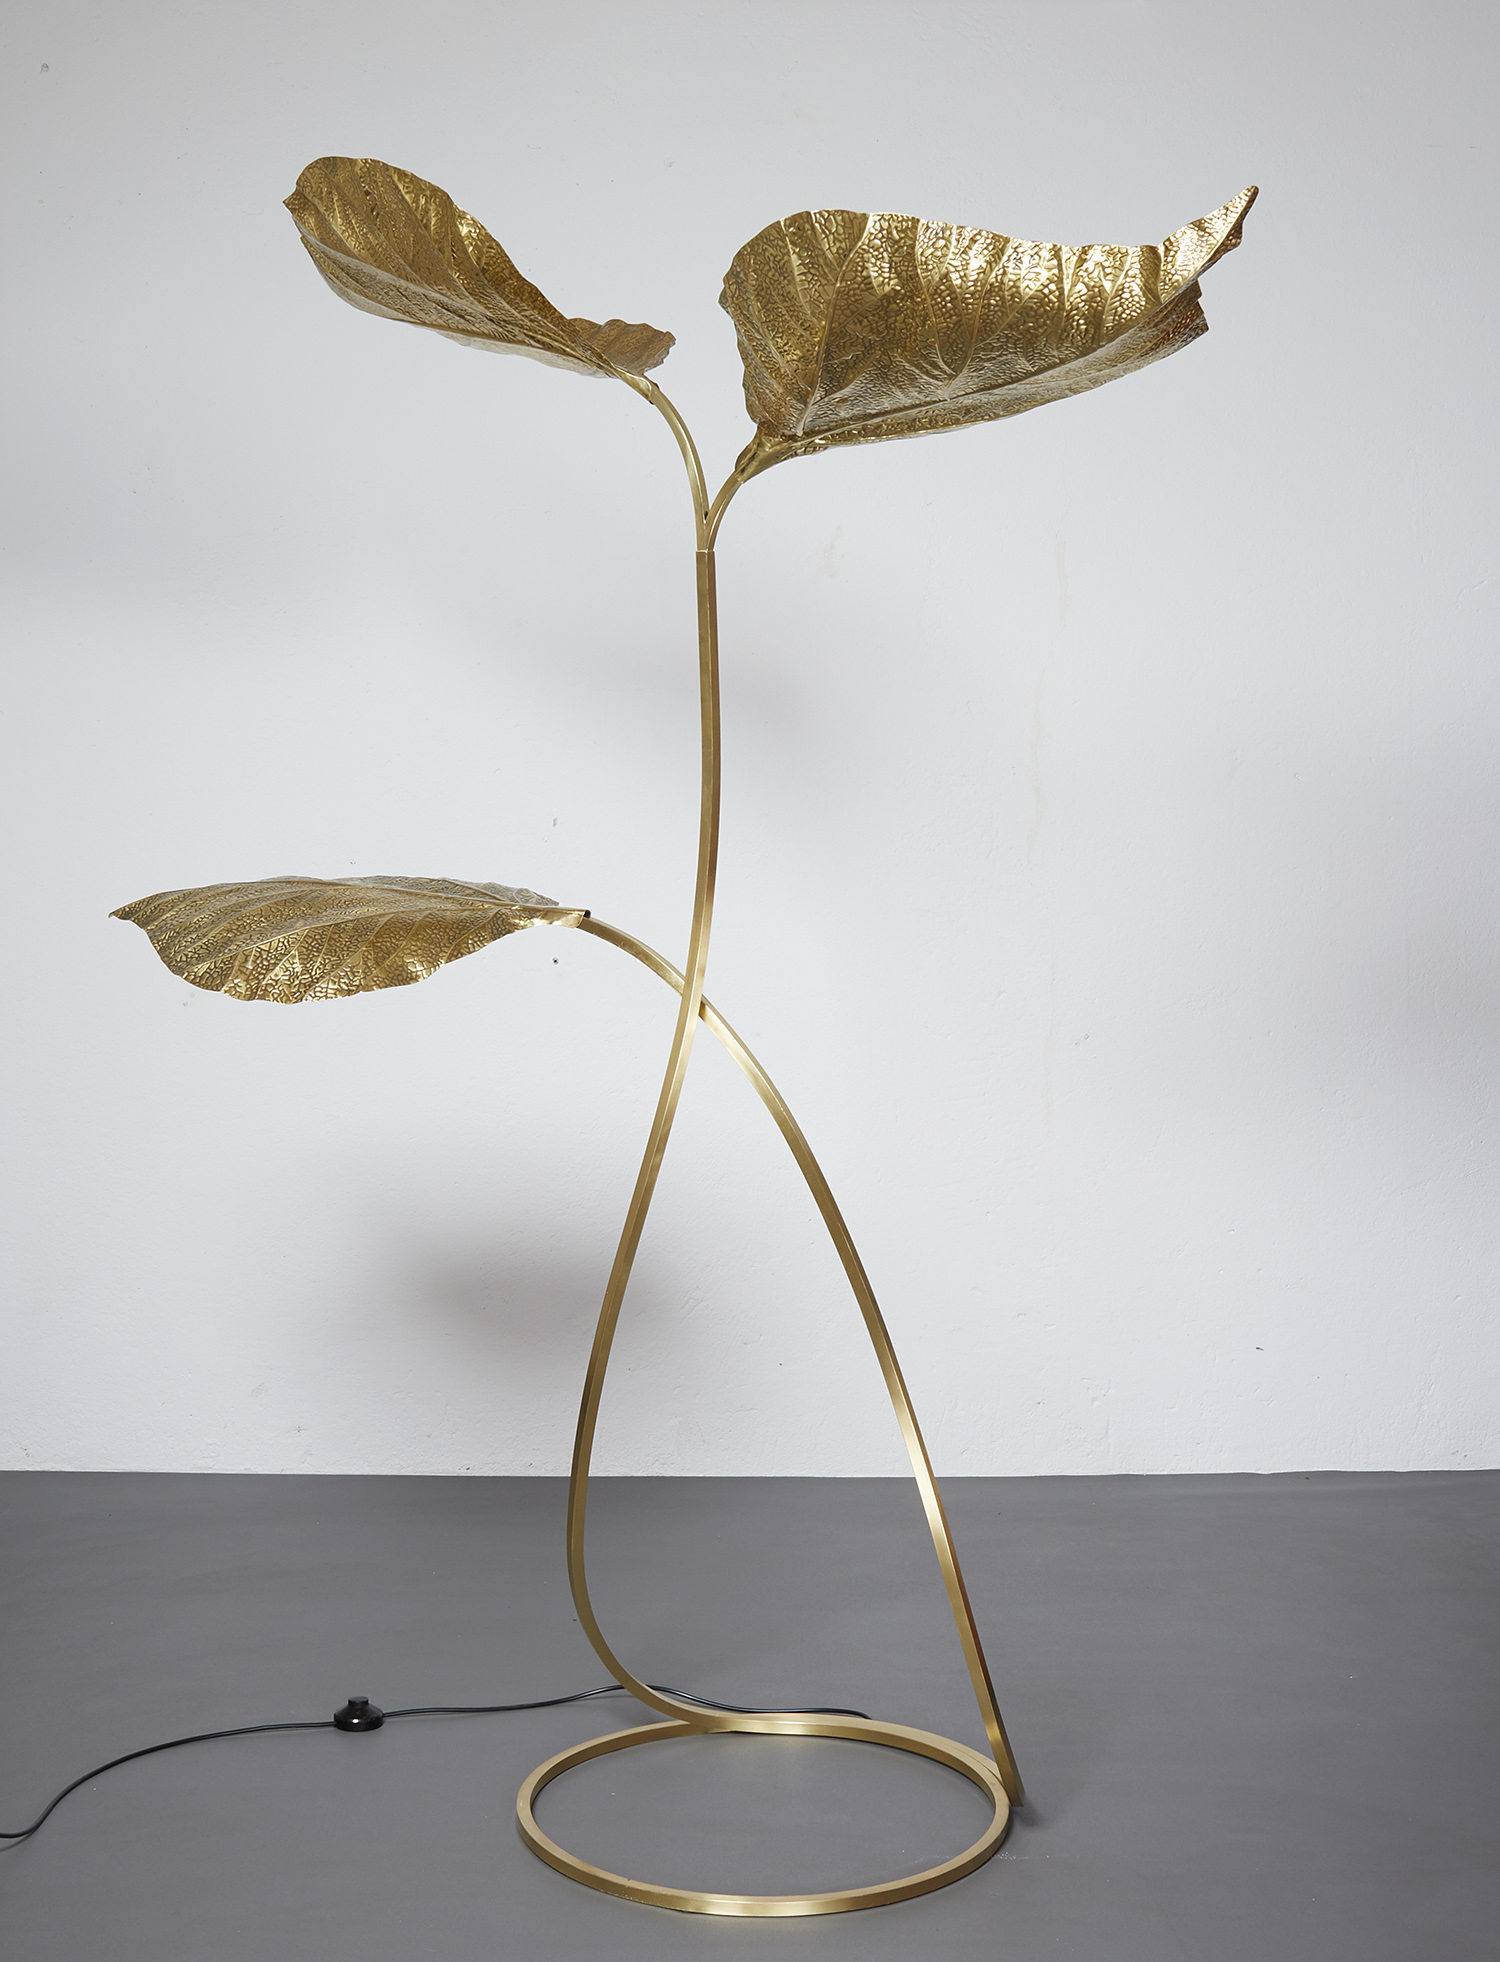 carlo-giorgi-brass-floor-lamp-with-three-leaves-for-bottega-gadda-italy-1970-image-02